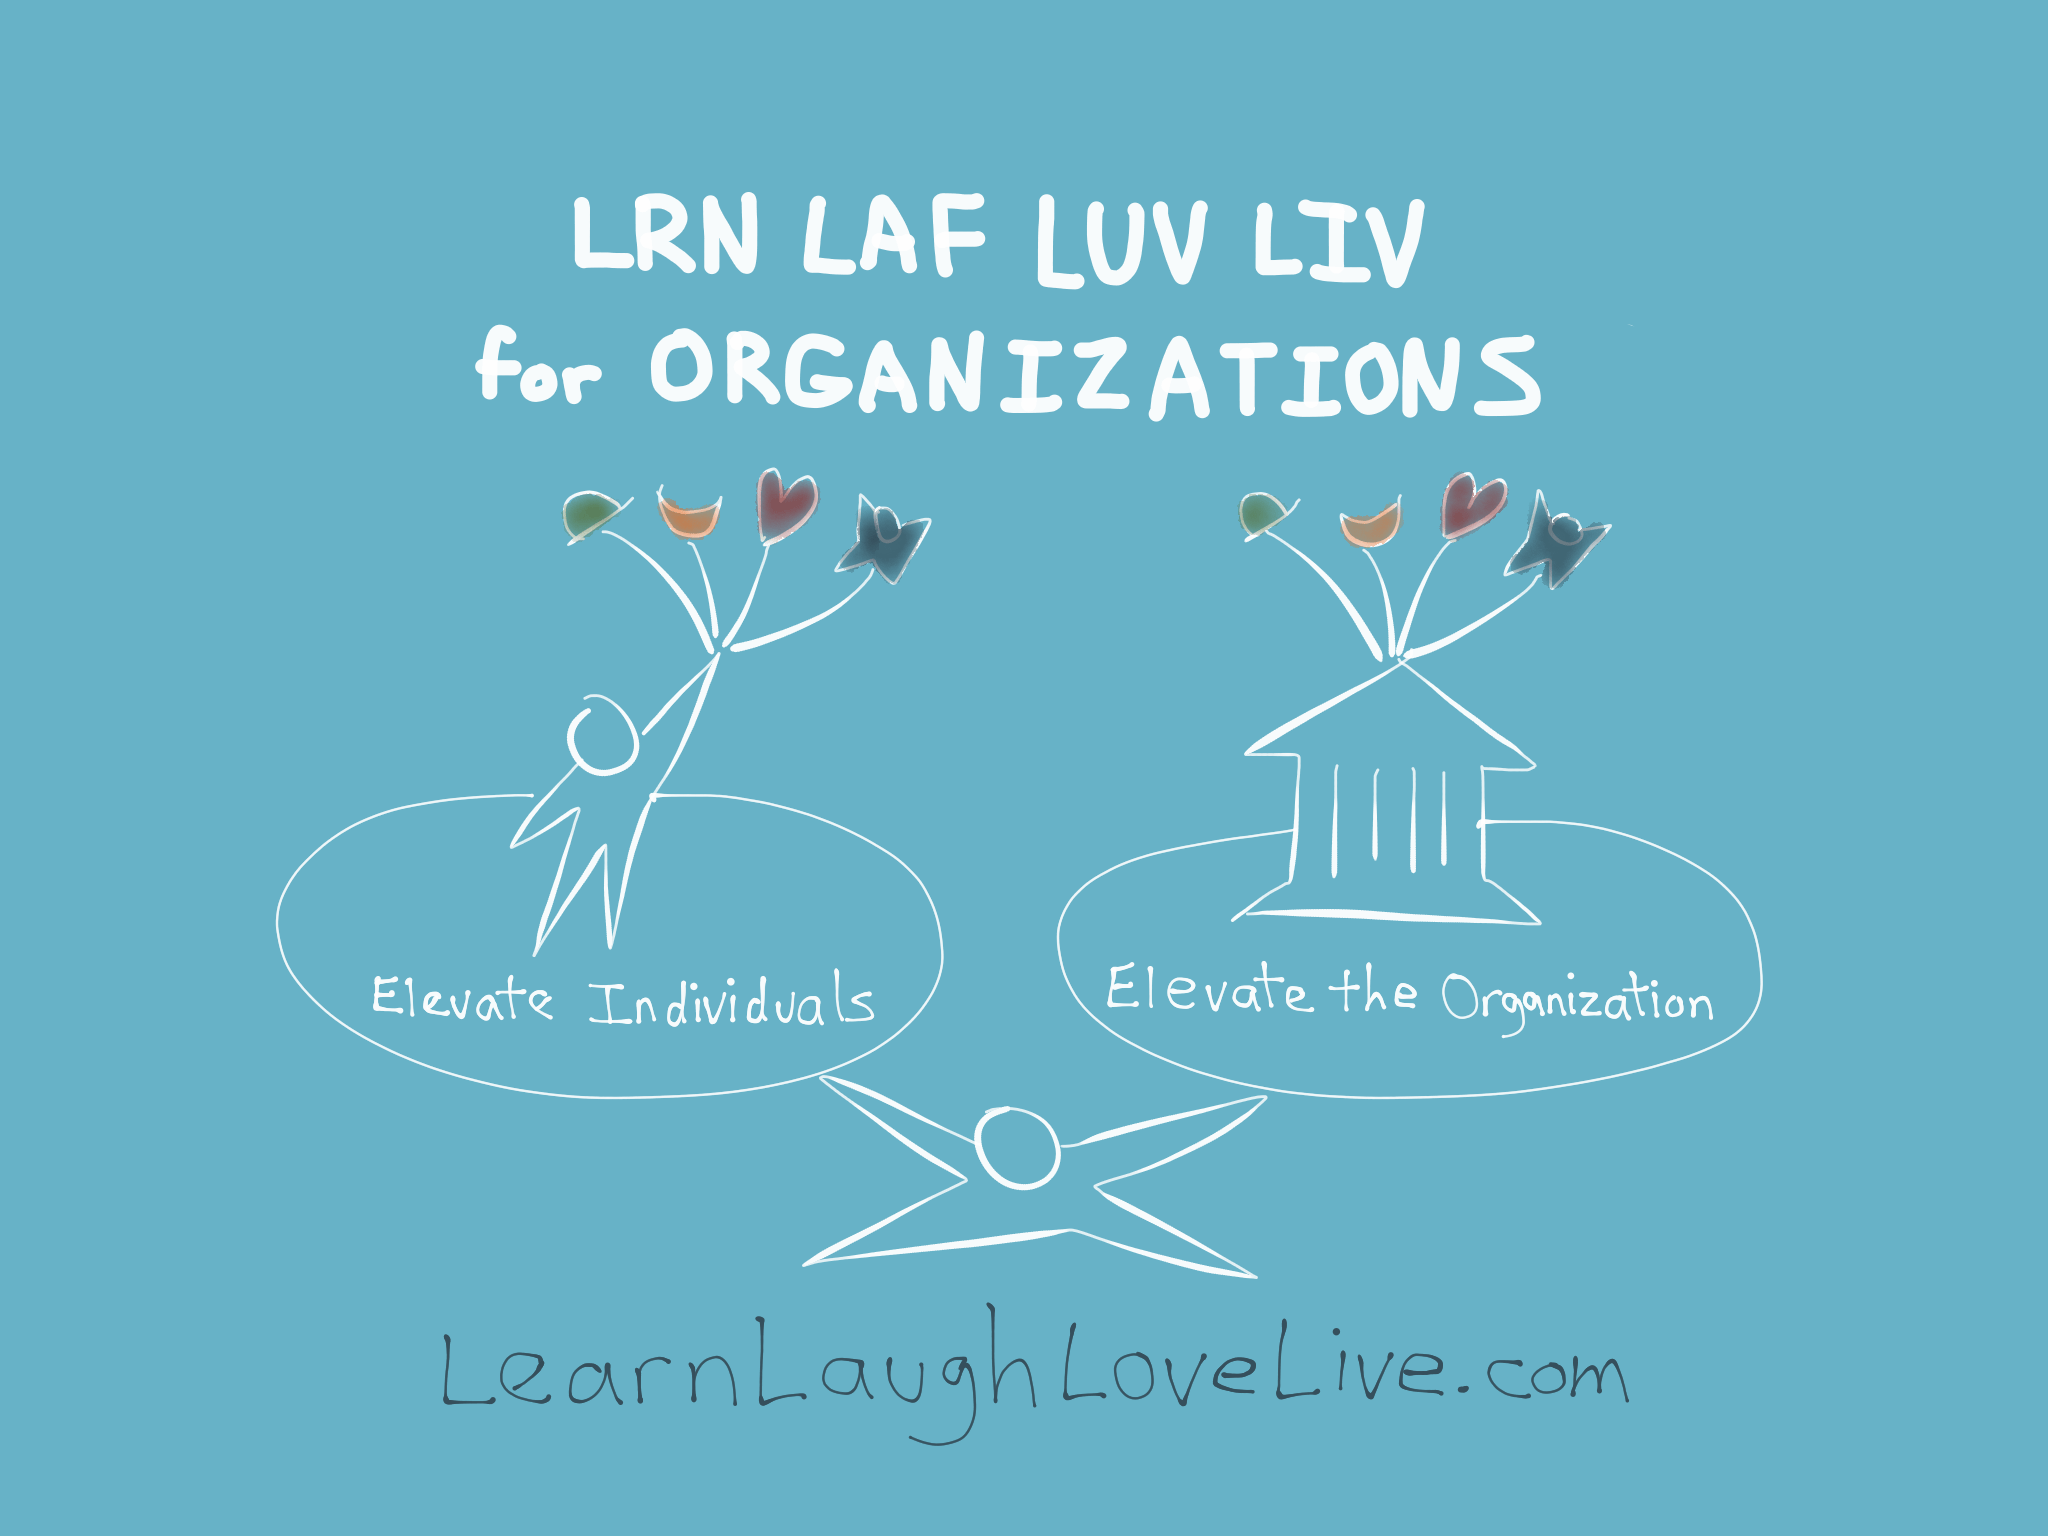 LRN LAF LUV LIV Organizations Learn Laugh Love Live Life LYF